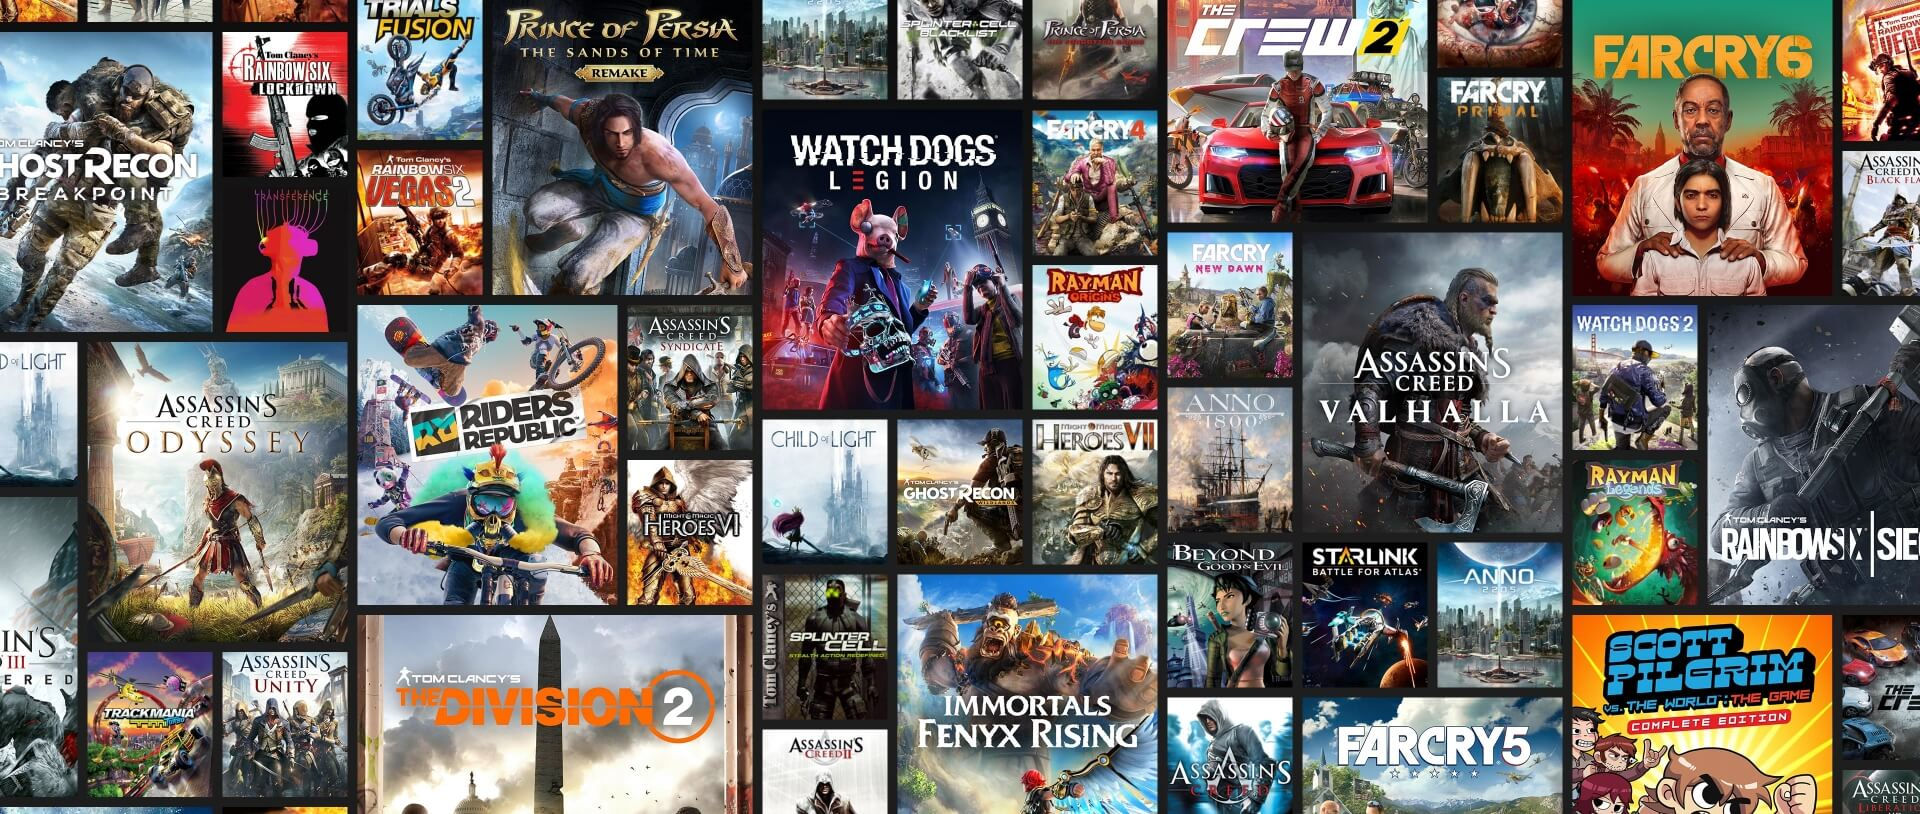 Mosaic representing the new Ubisoft releases and the library of over 100 games included in Ubisoft+ subscription